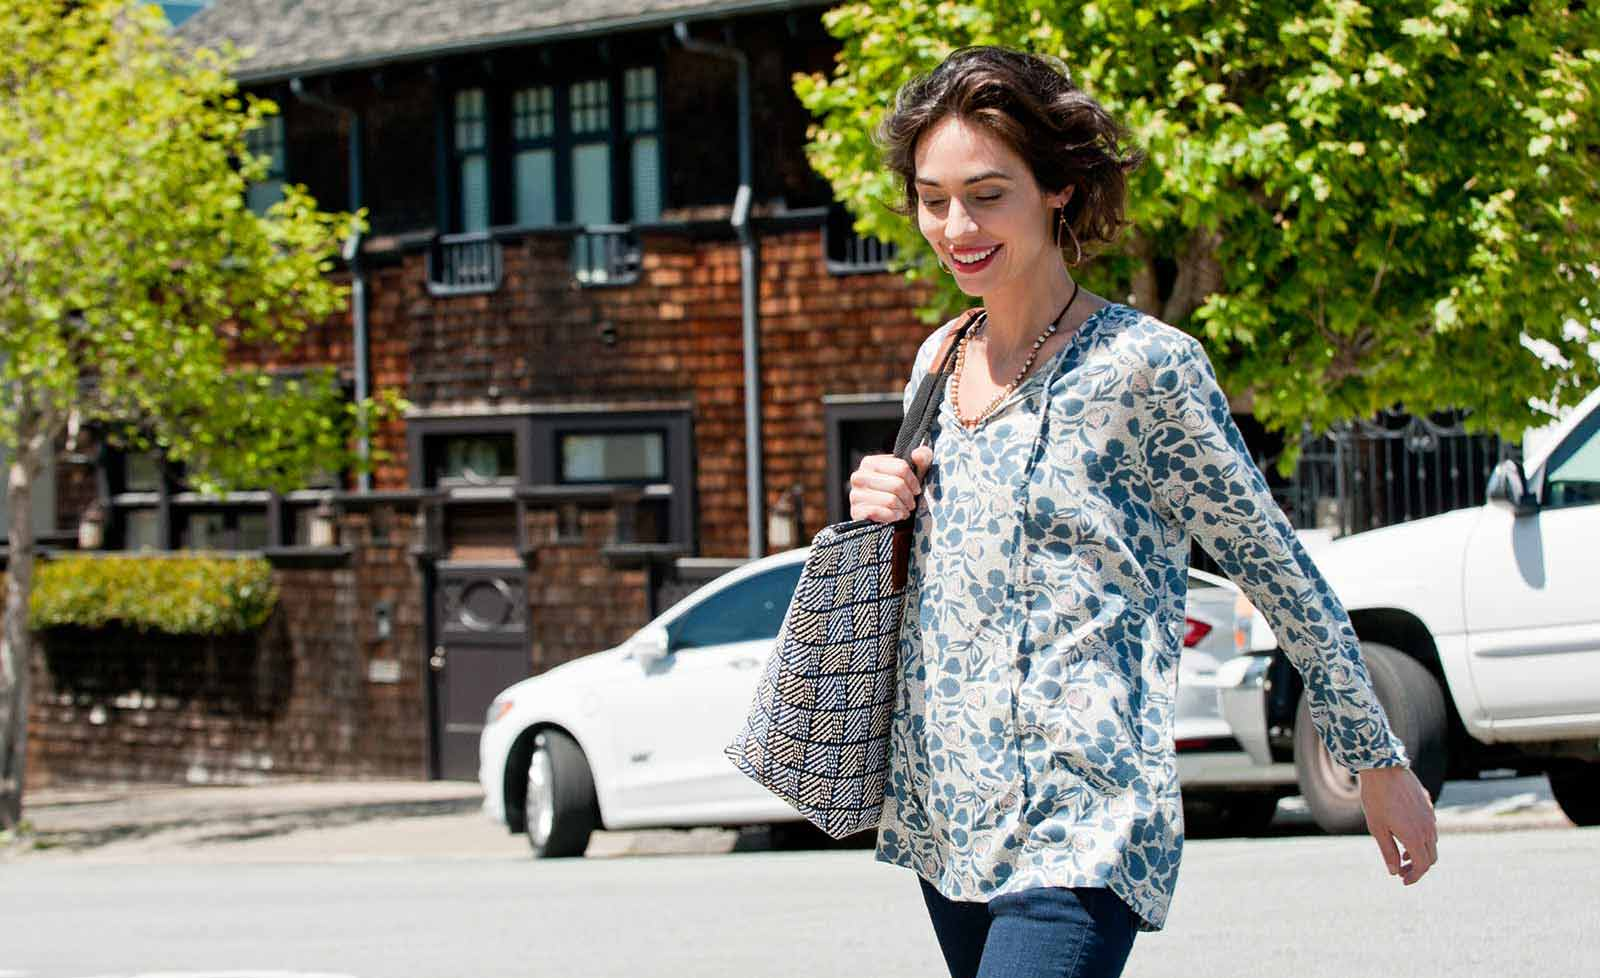 woman wearing white and blue peasant shirt and walking across the street